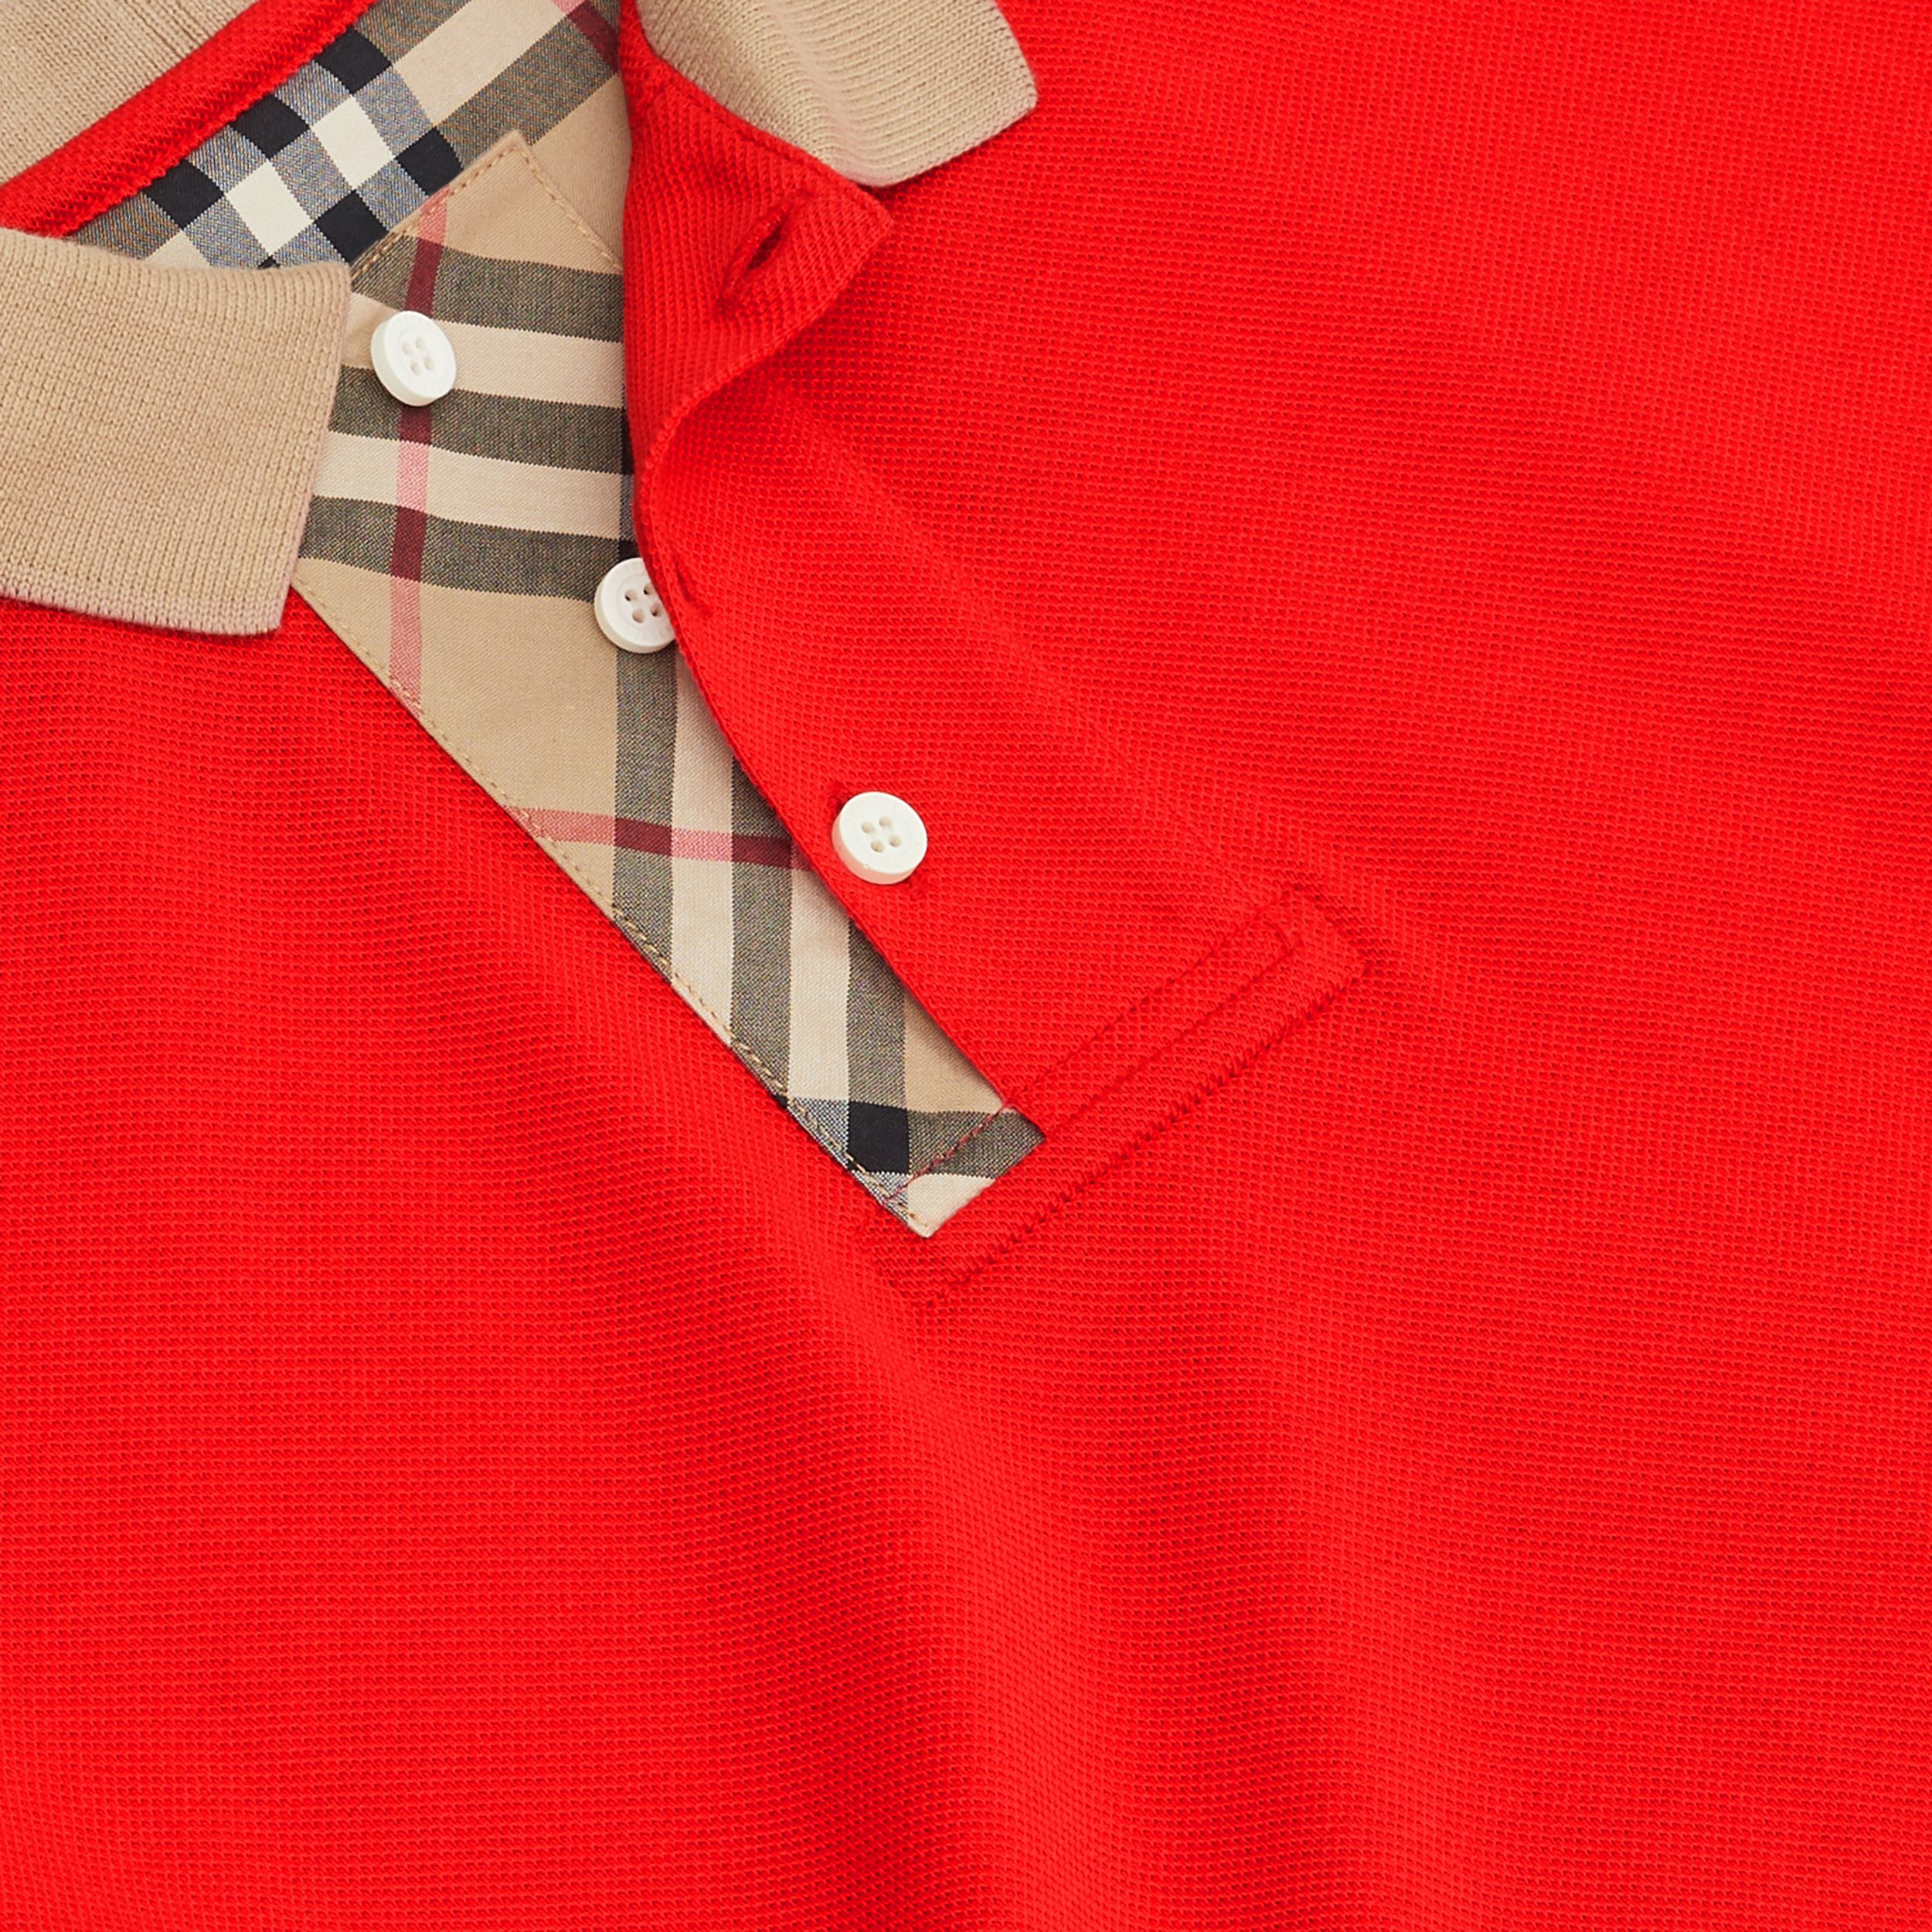 Vintage Check Trim Cotton Polo Shirt in Bright Red | Burberry Australia - 2